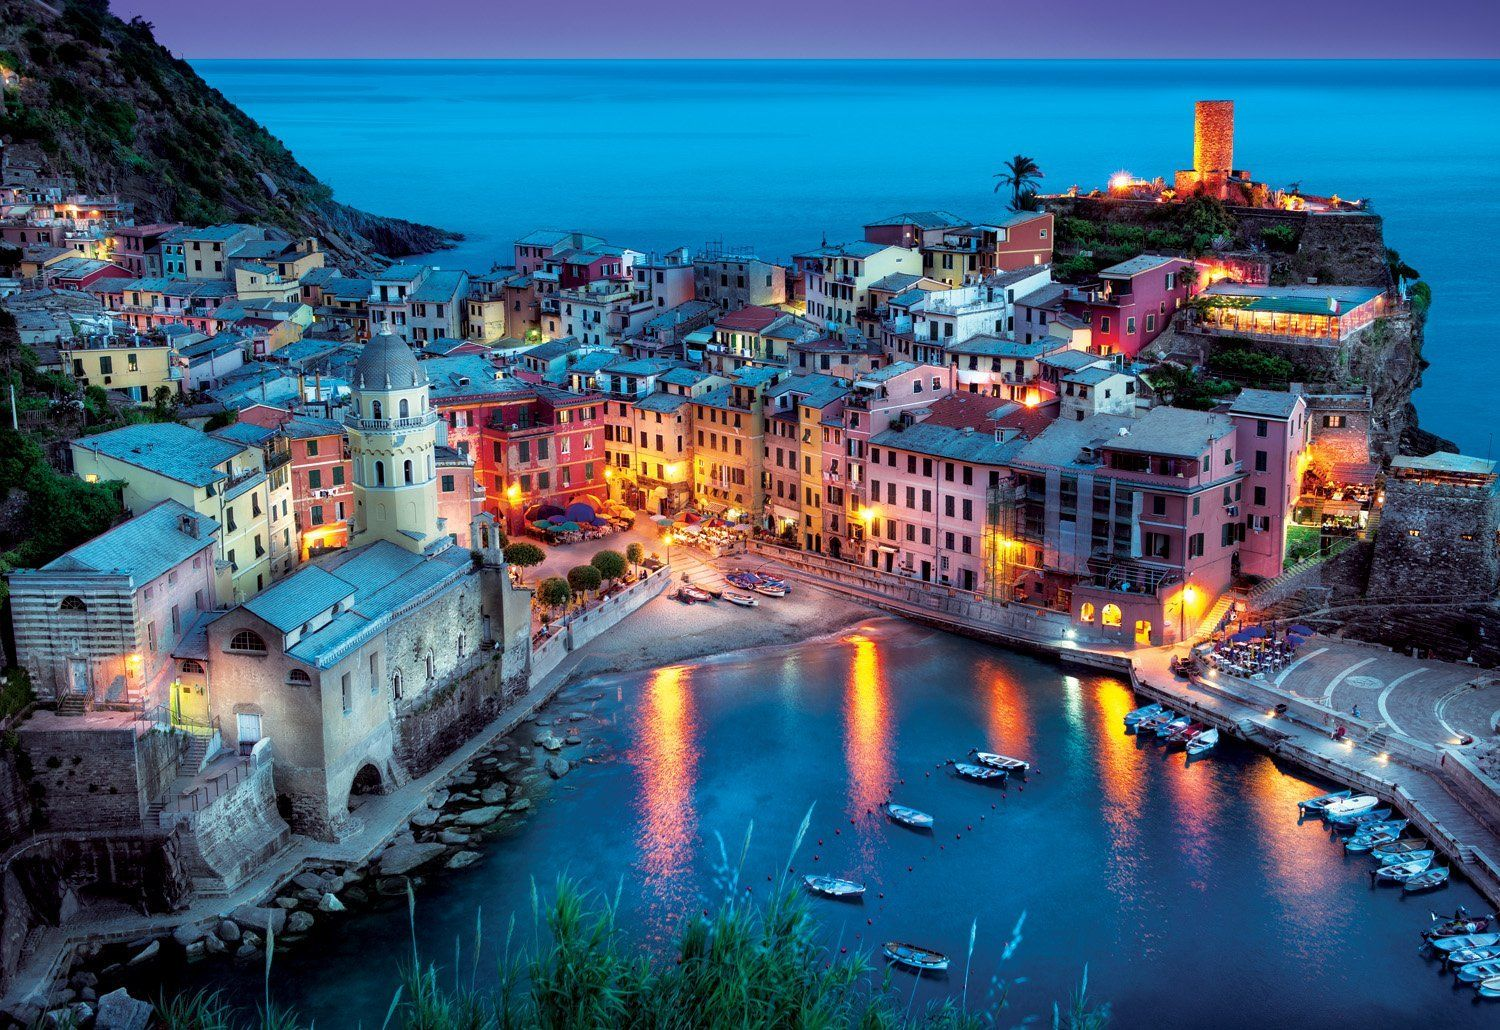 "Explore the breathtaking centuries-old seaside villages located on the beautiful Italian Riviera coastline.  New Cinque Terre - 2000 Piece Jigsaw Puzzle By Buffalo Games. 38.5"" x 26.5"" when complete. Includes Bonus Poster!  #puzzlewarehouse #puzzle #warehouse #jigsawpuzzle #jigsaw #puzzle #landscape #italy #cinqueterre #puzzles #buffalogames #new #newpuzzles"